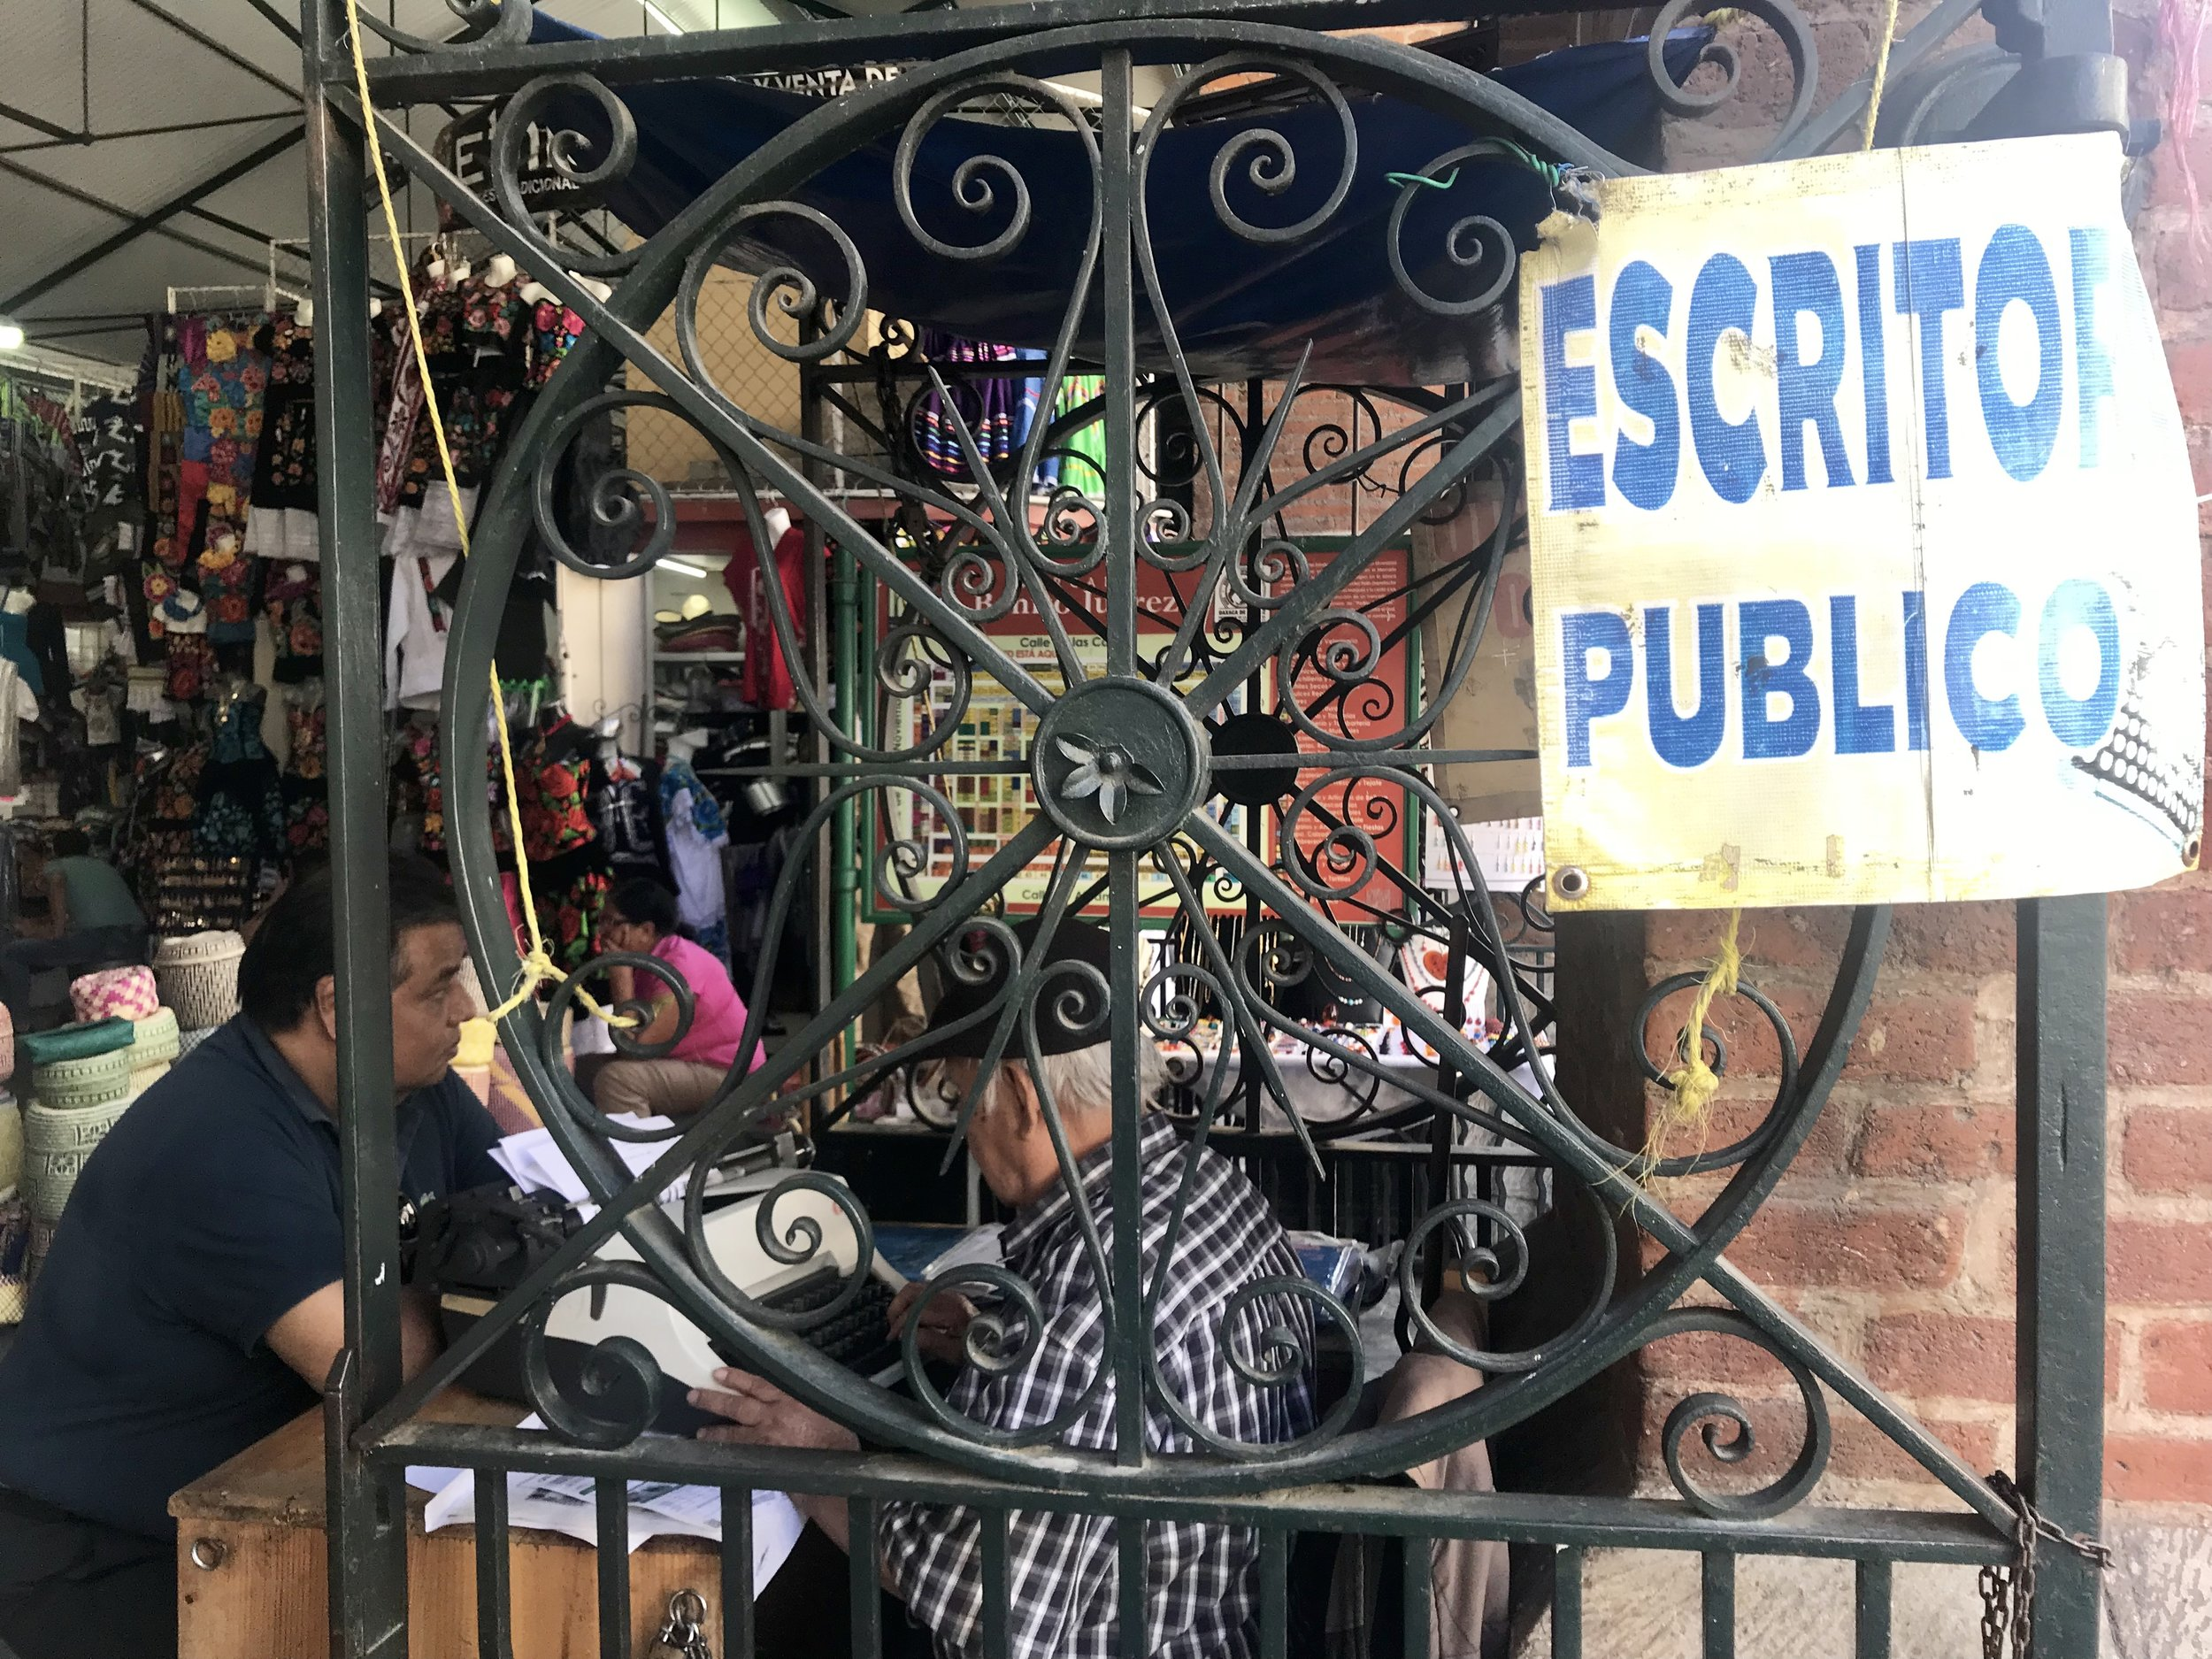 This fellow surprised me: An older man with a manual typewriter in a Oaxaca City market, writing a letter for a customer.